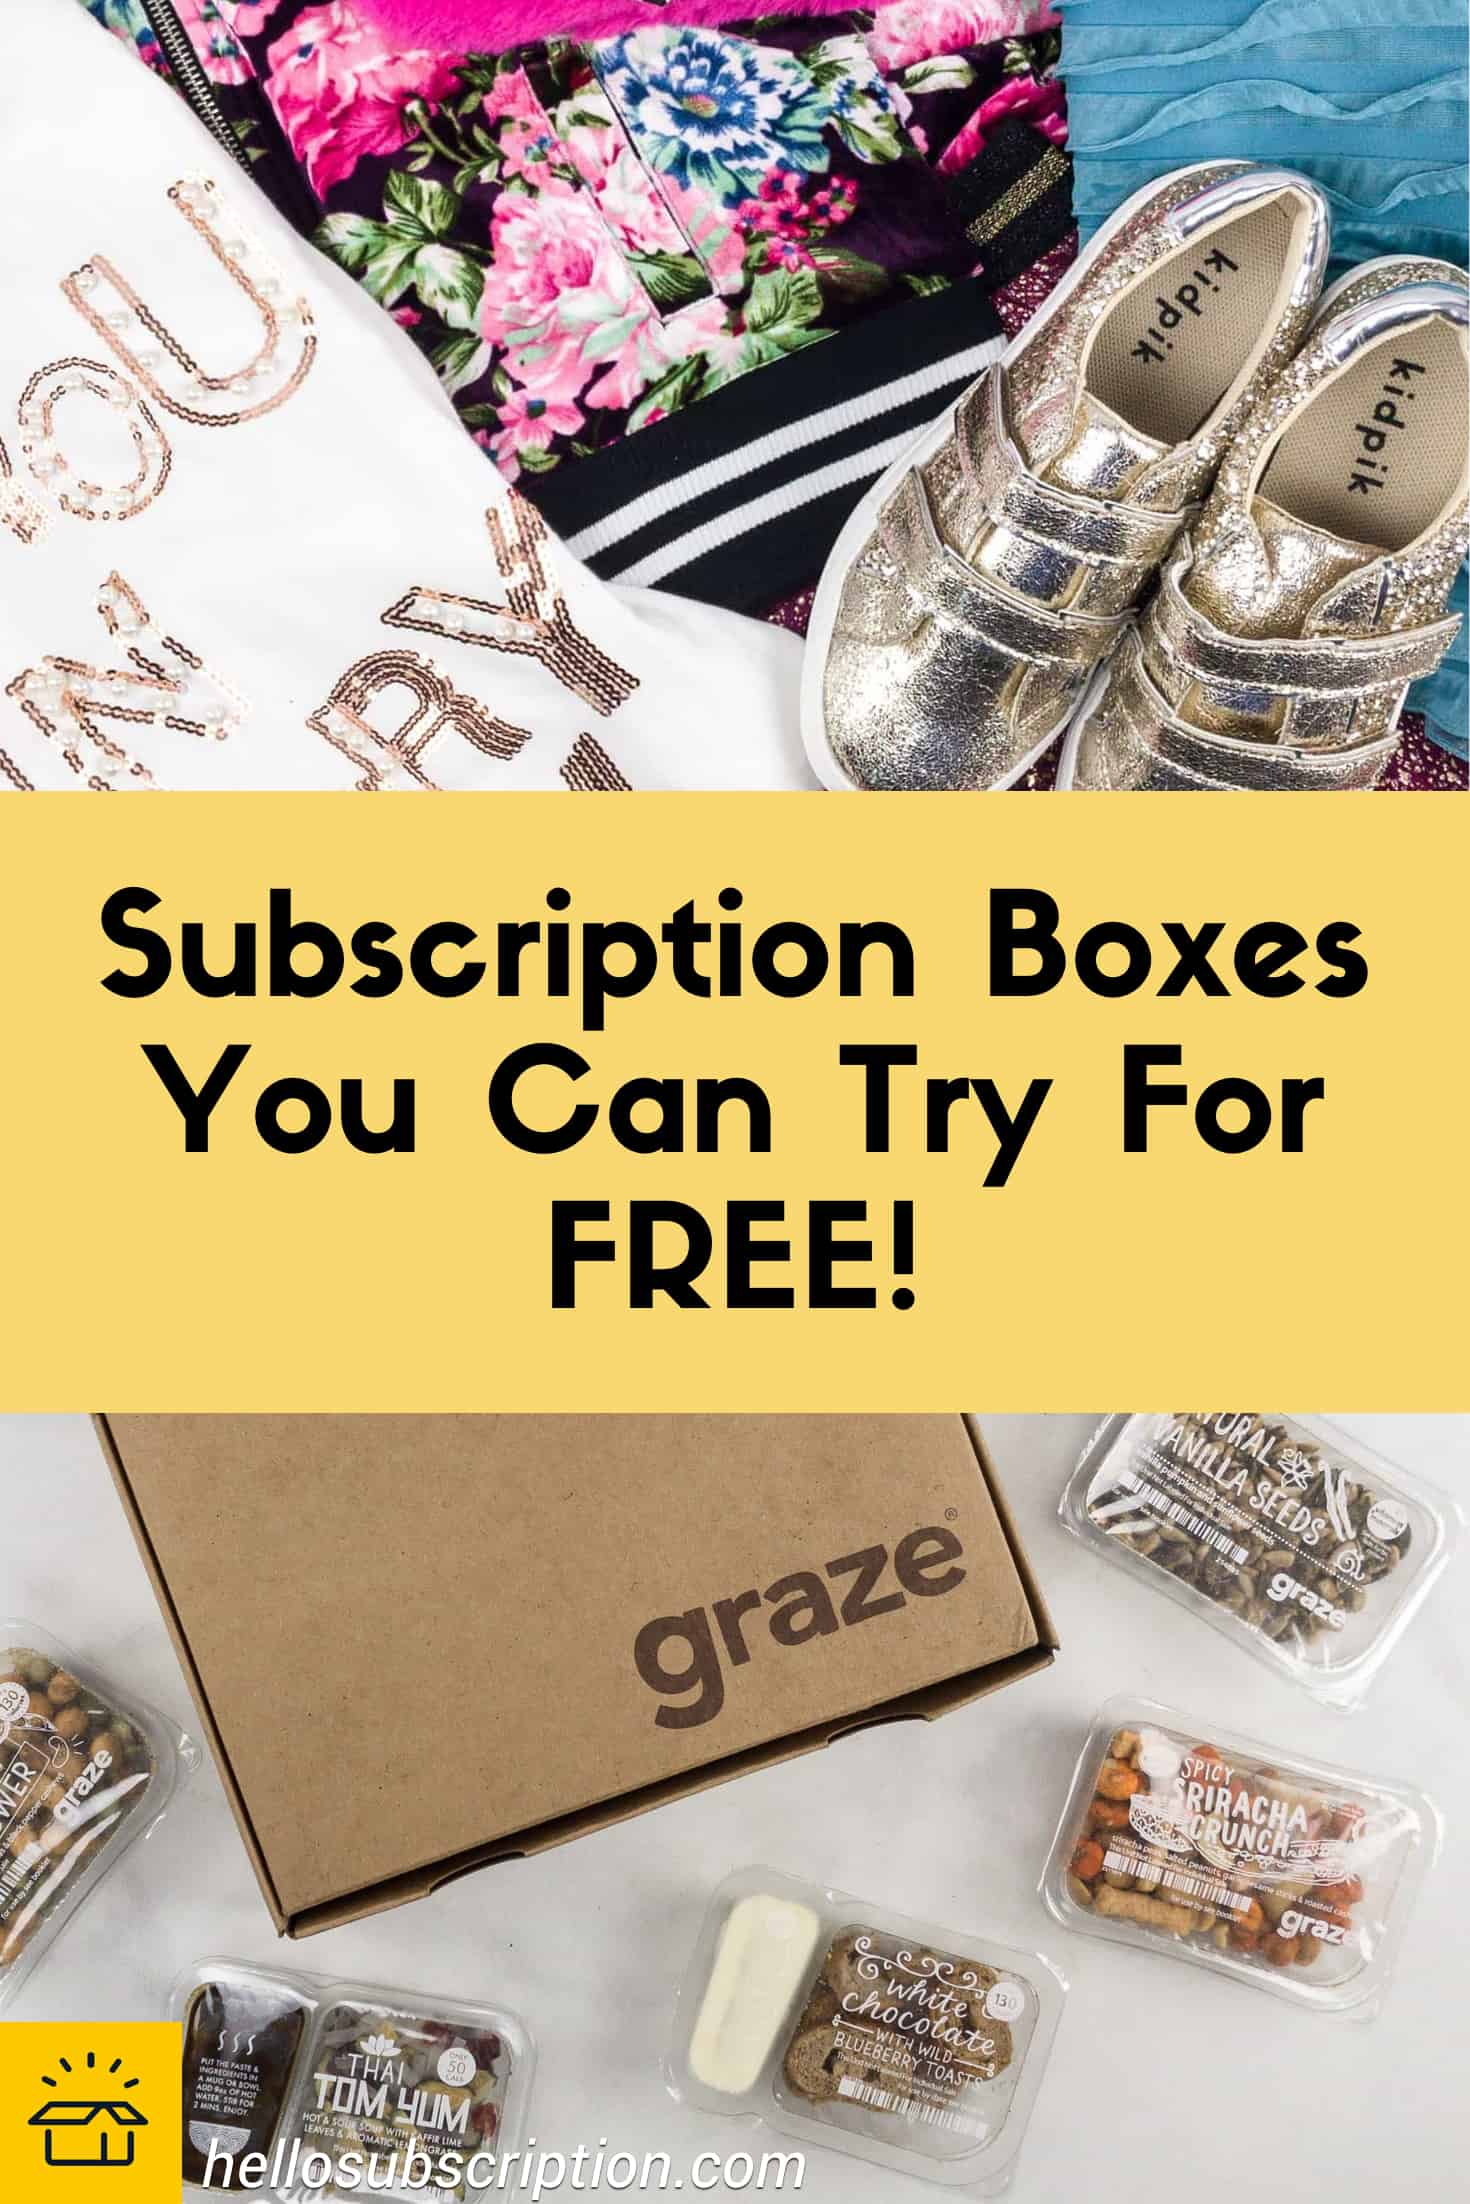 FREE Subscription Boxes Cheap Monthly Subscriptions & More